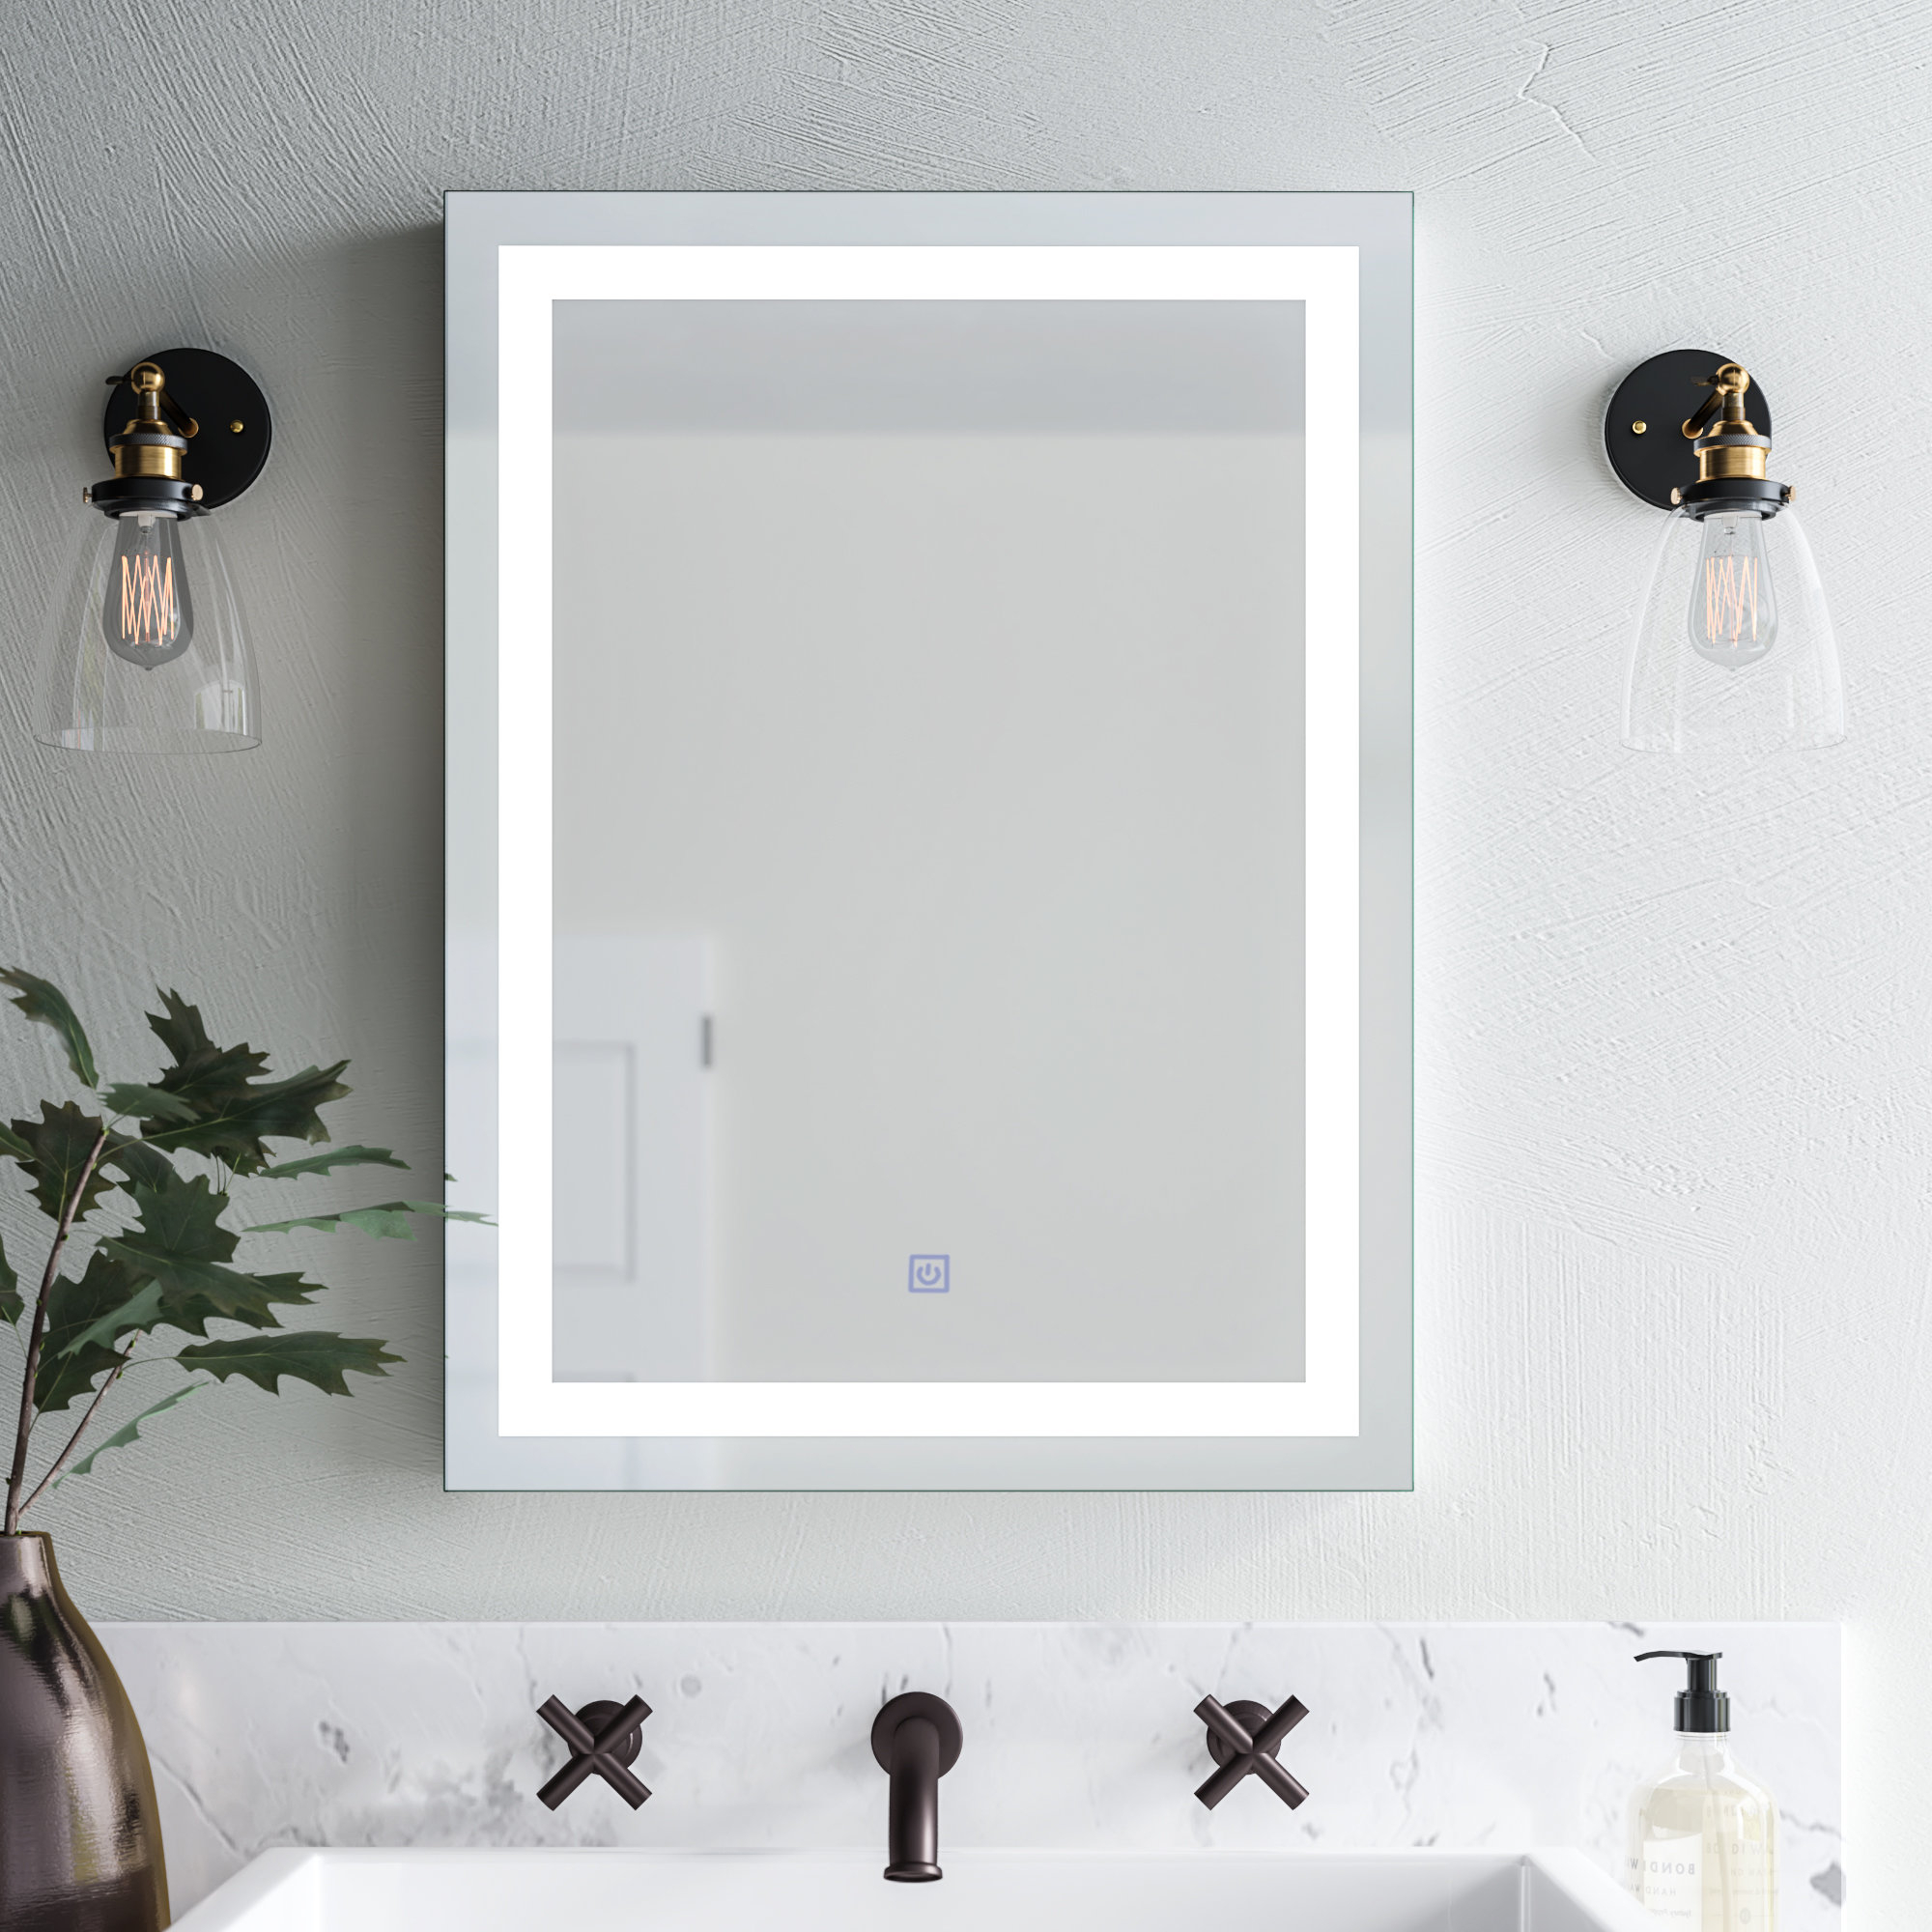 Newest Butcher Illuminated Bathroom Wall Mirror With Regard To Backlit Bathroom Wall Mirrors (View 20 of 20)